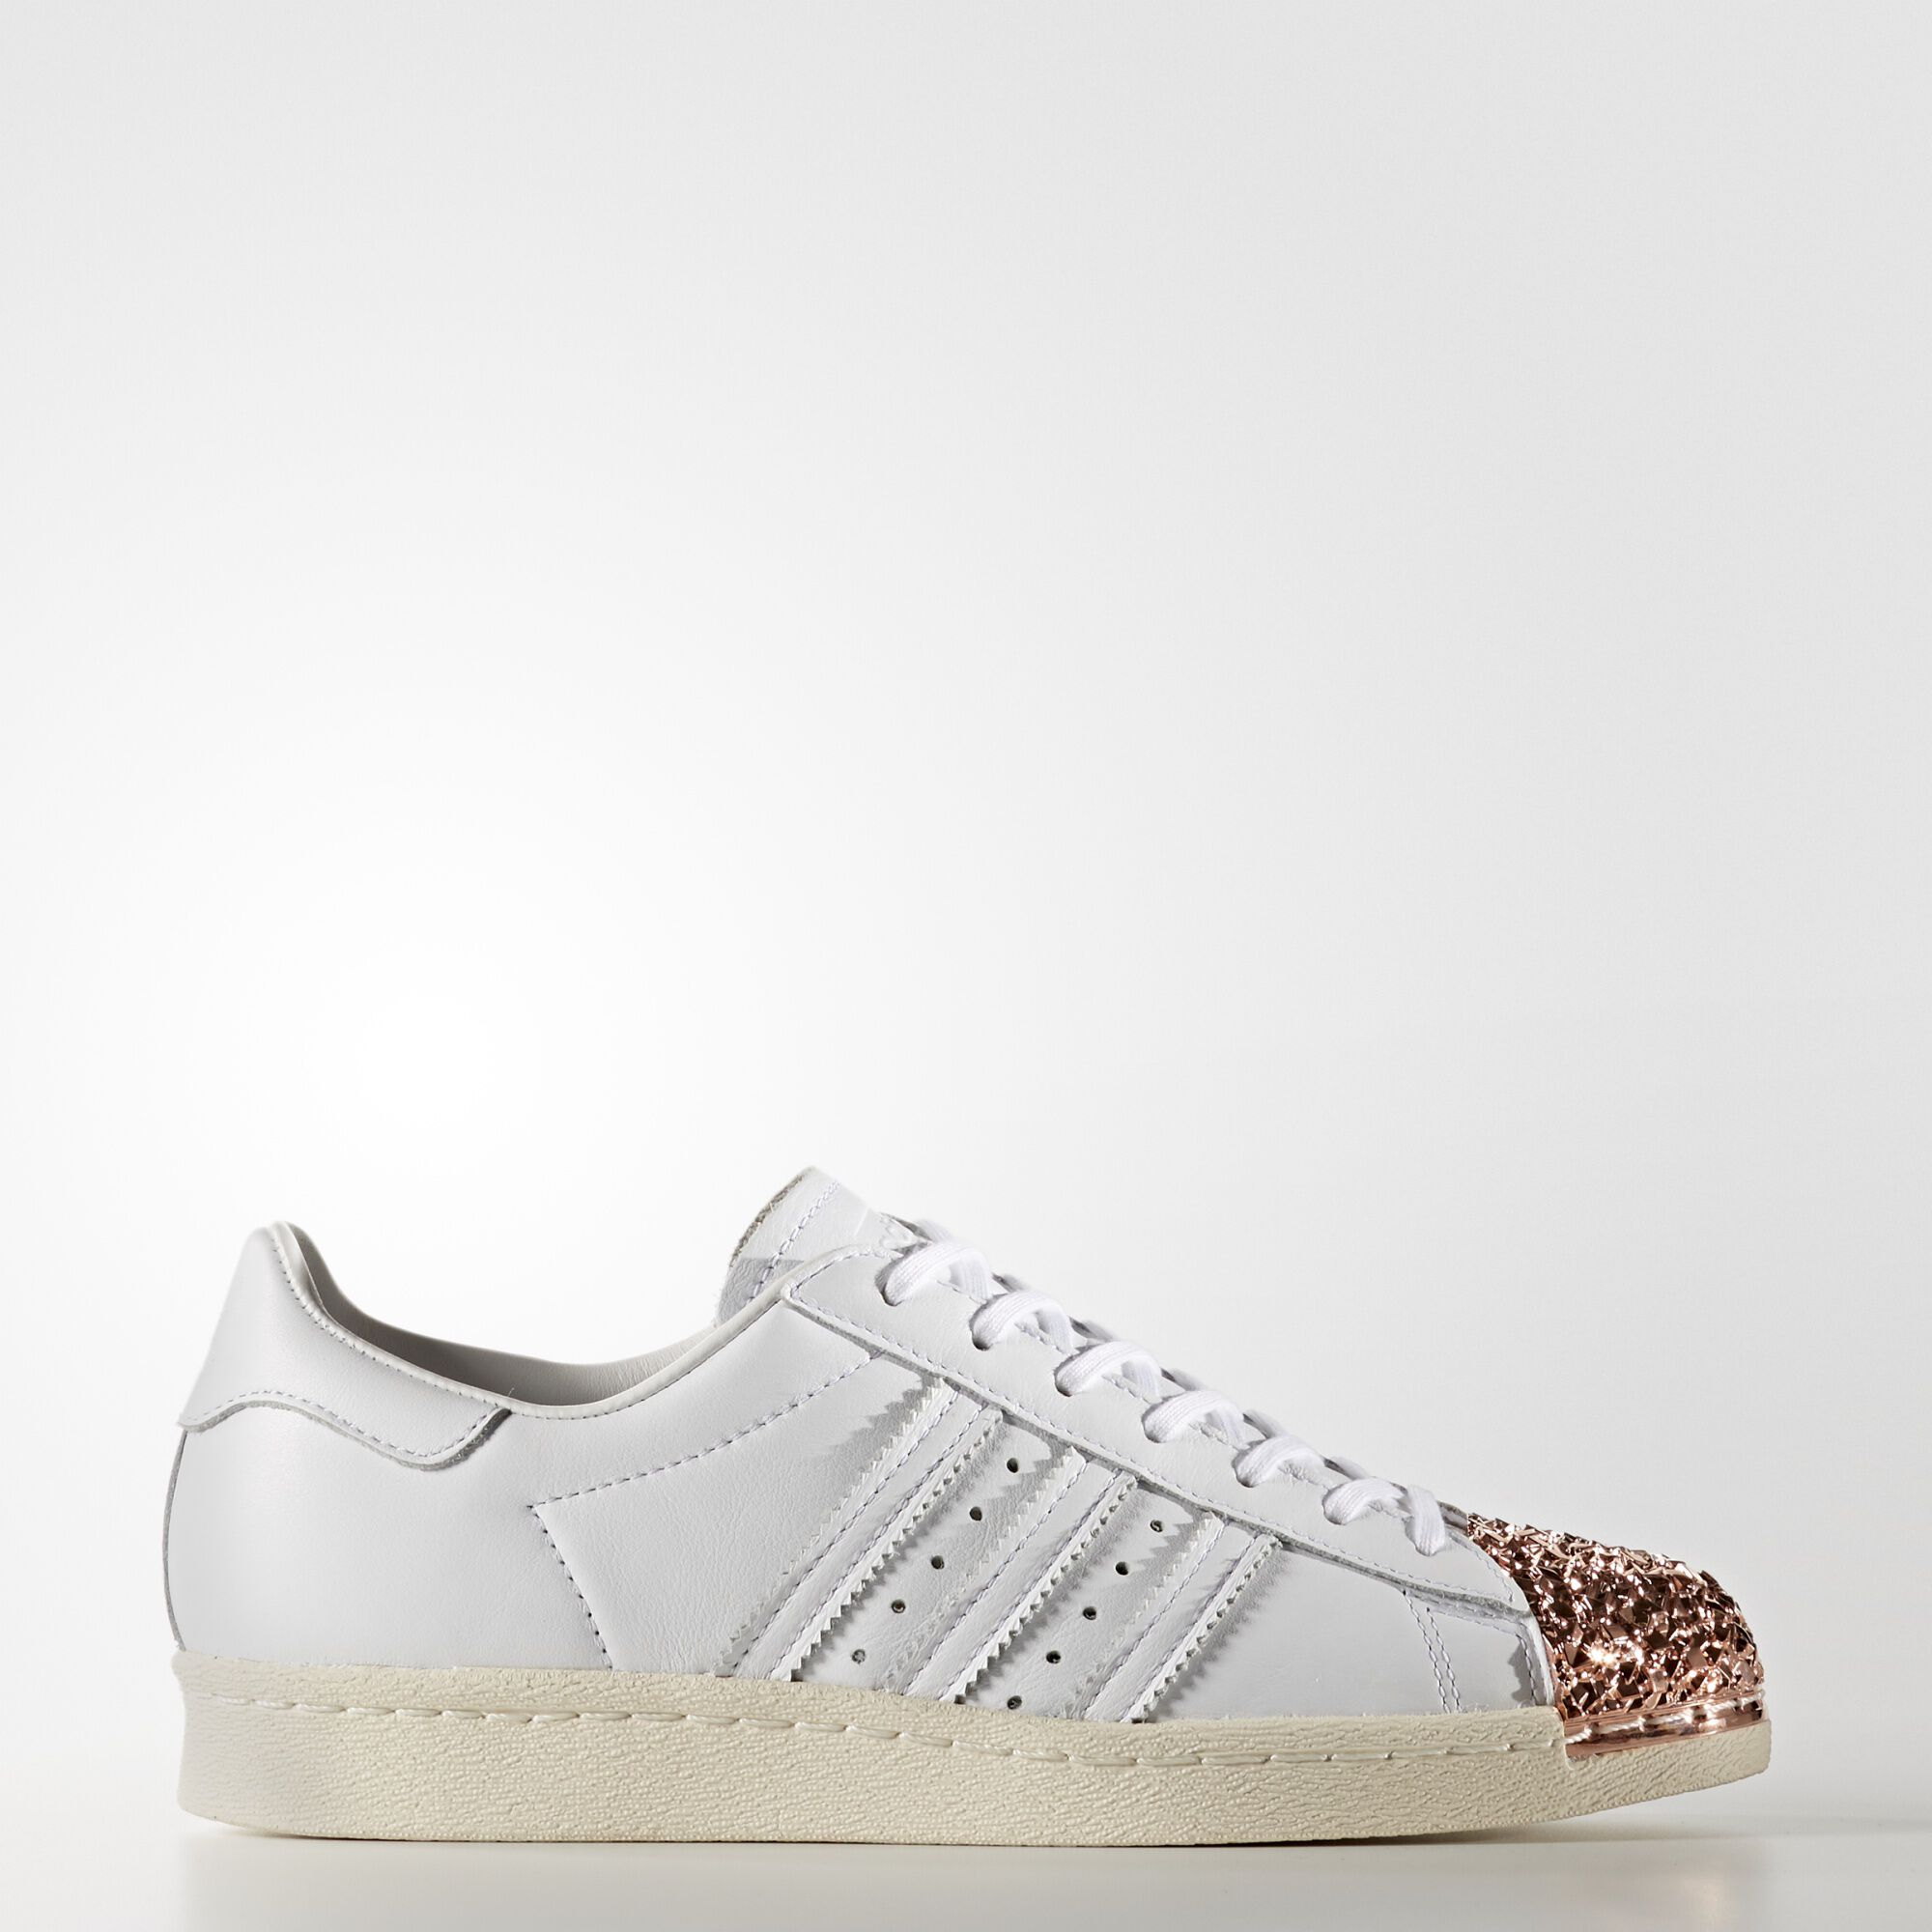 Adidas Superstar Wildleder Grün